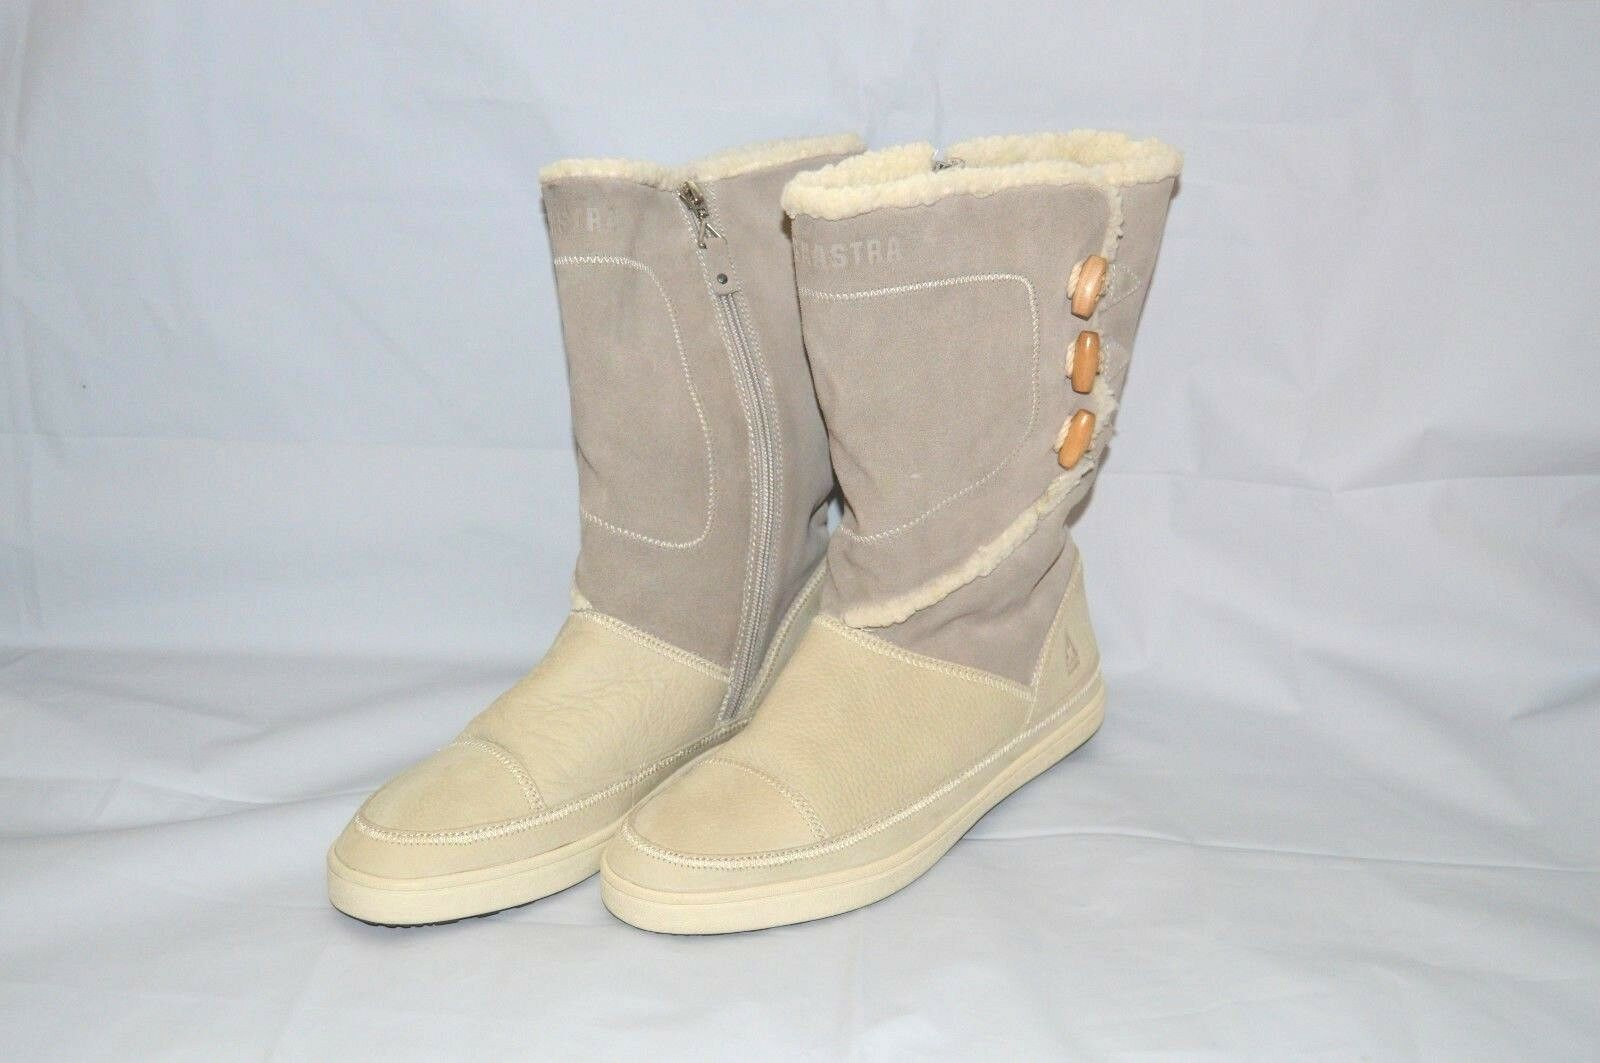 GAASTRA WINTER BOOTS LEATHER SIZE 41 TOGGLE & SIDE ZIPPER